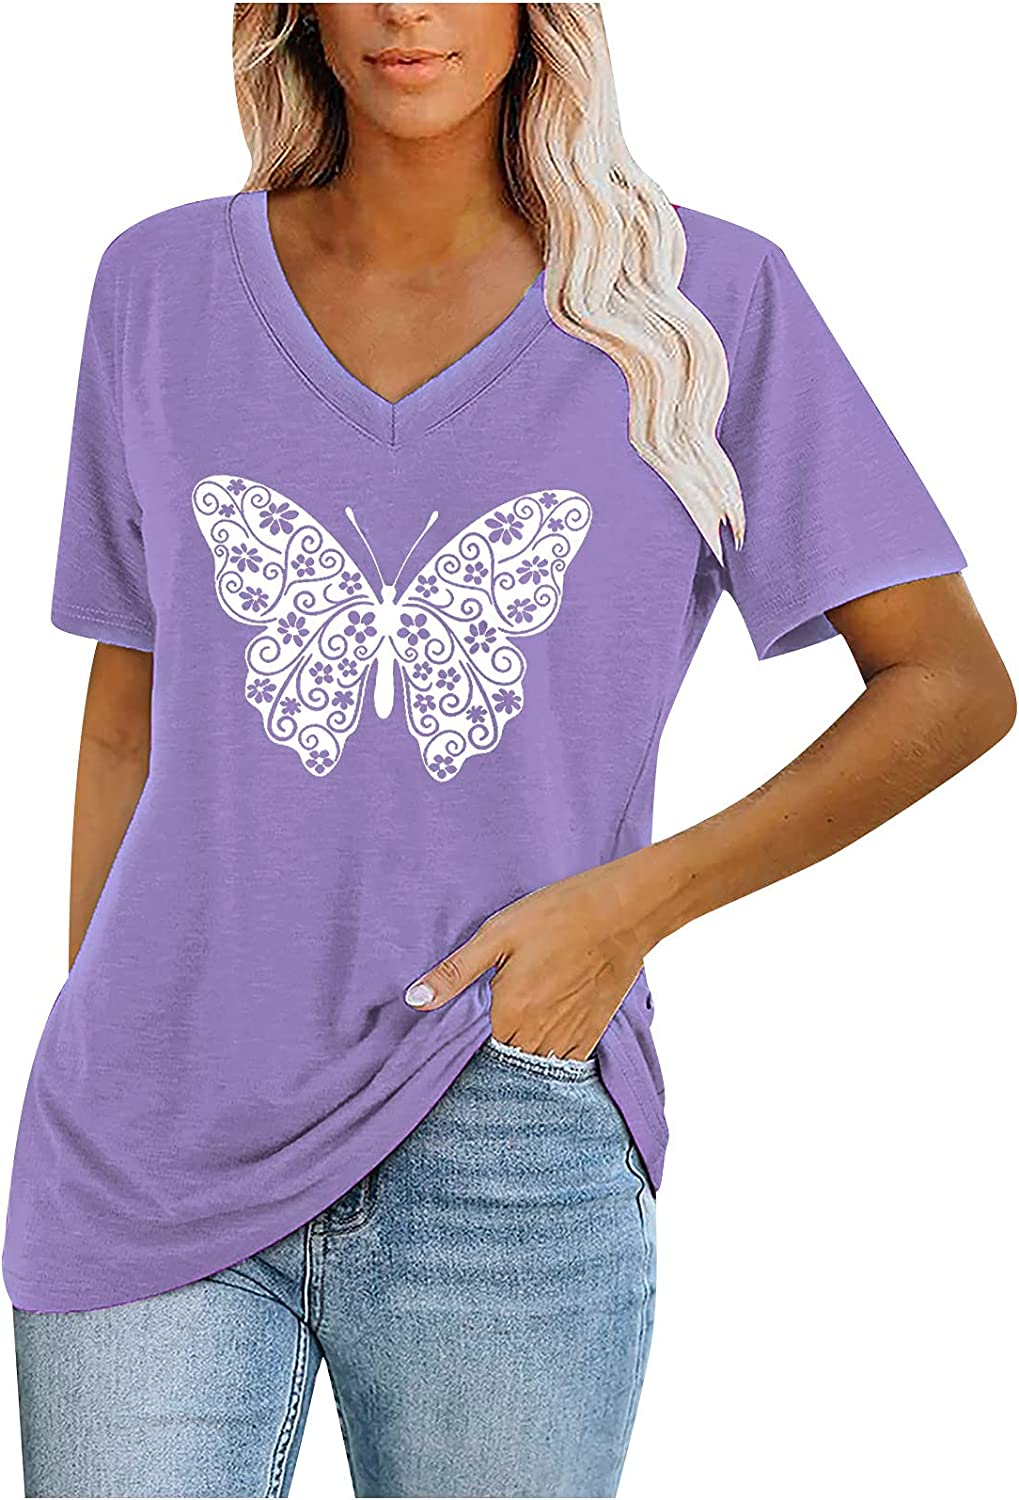 Summer Women Tunic Top Notched V Neck Short Sleeve Casual Top Shirt Tee Large Butterfly Graphic Loose Fit Blouse Tops